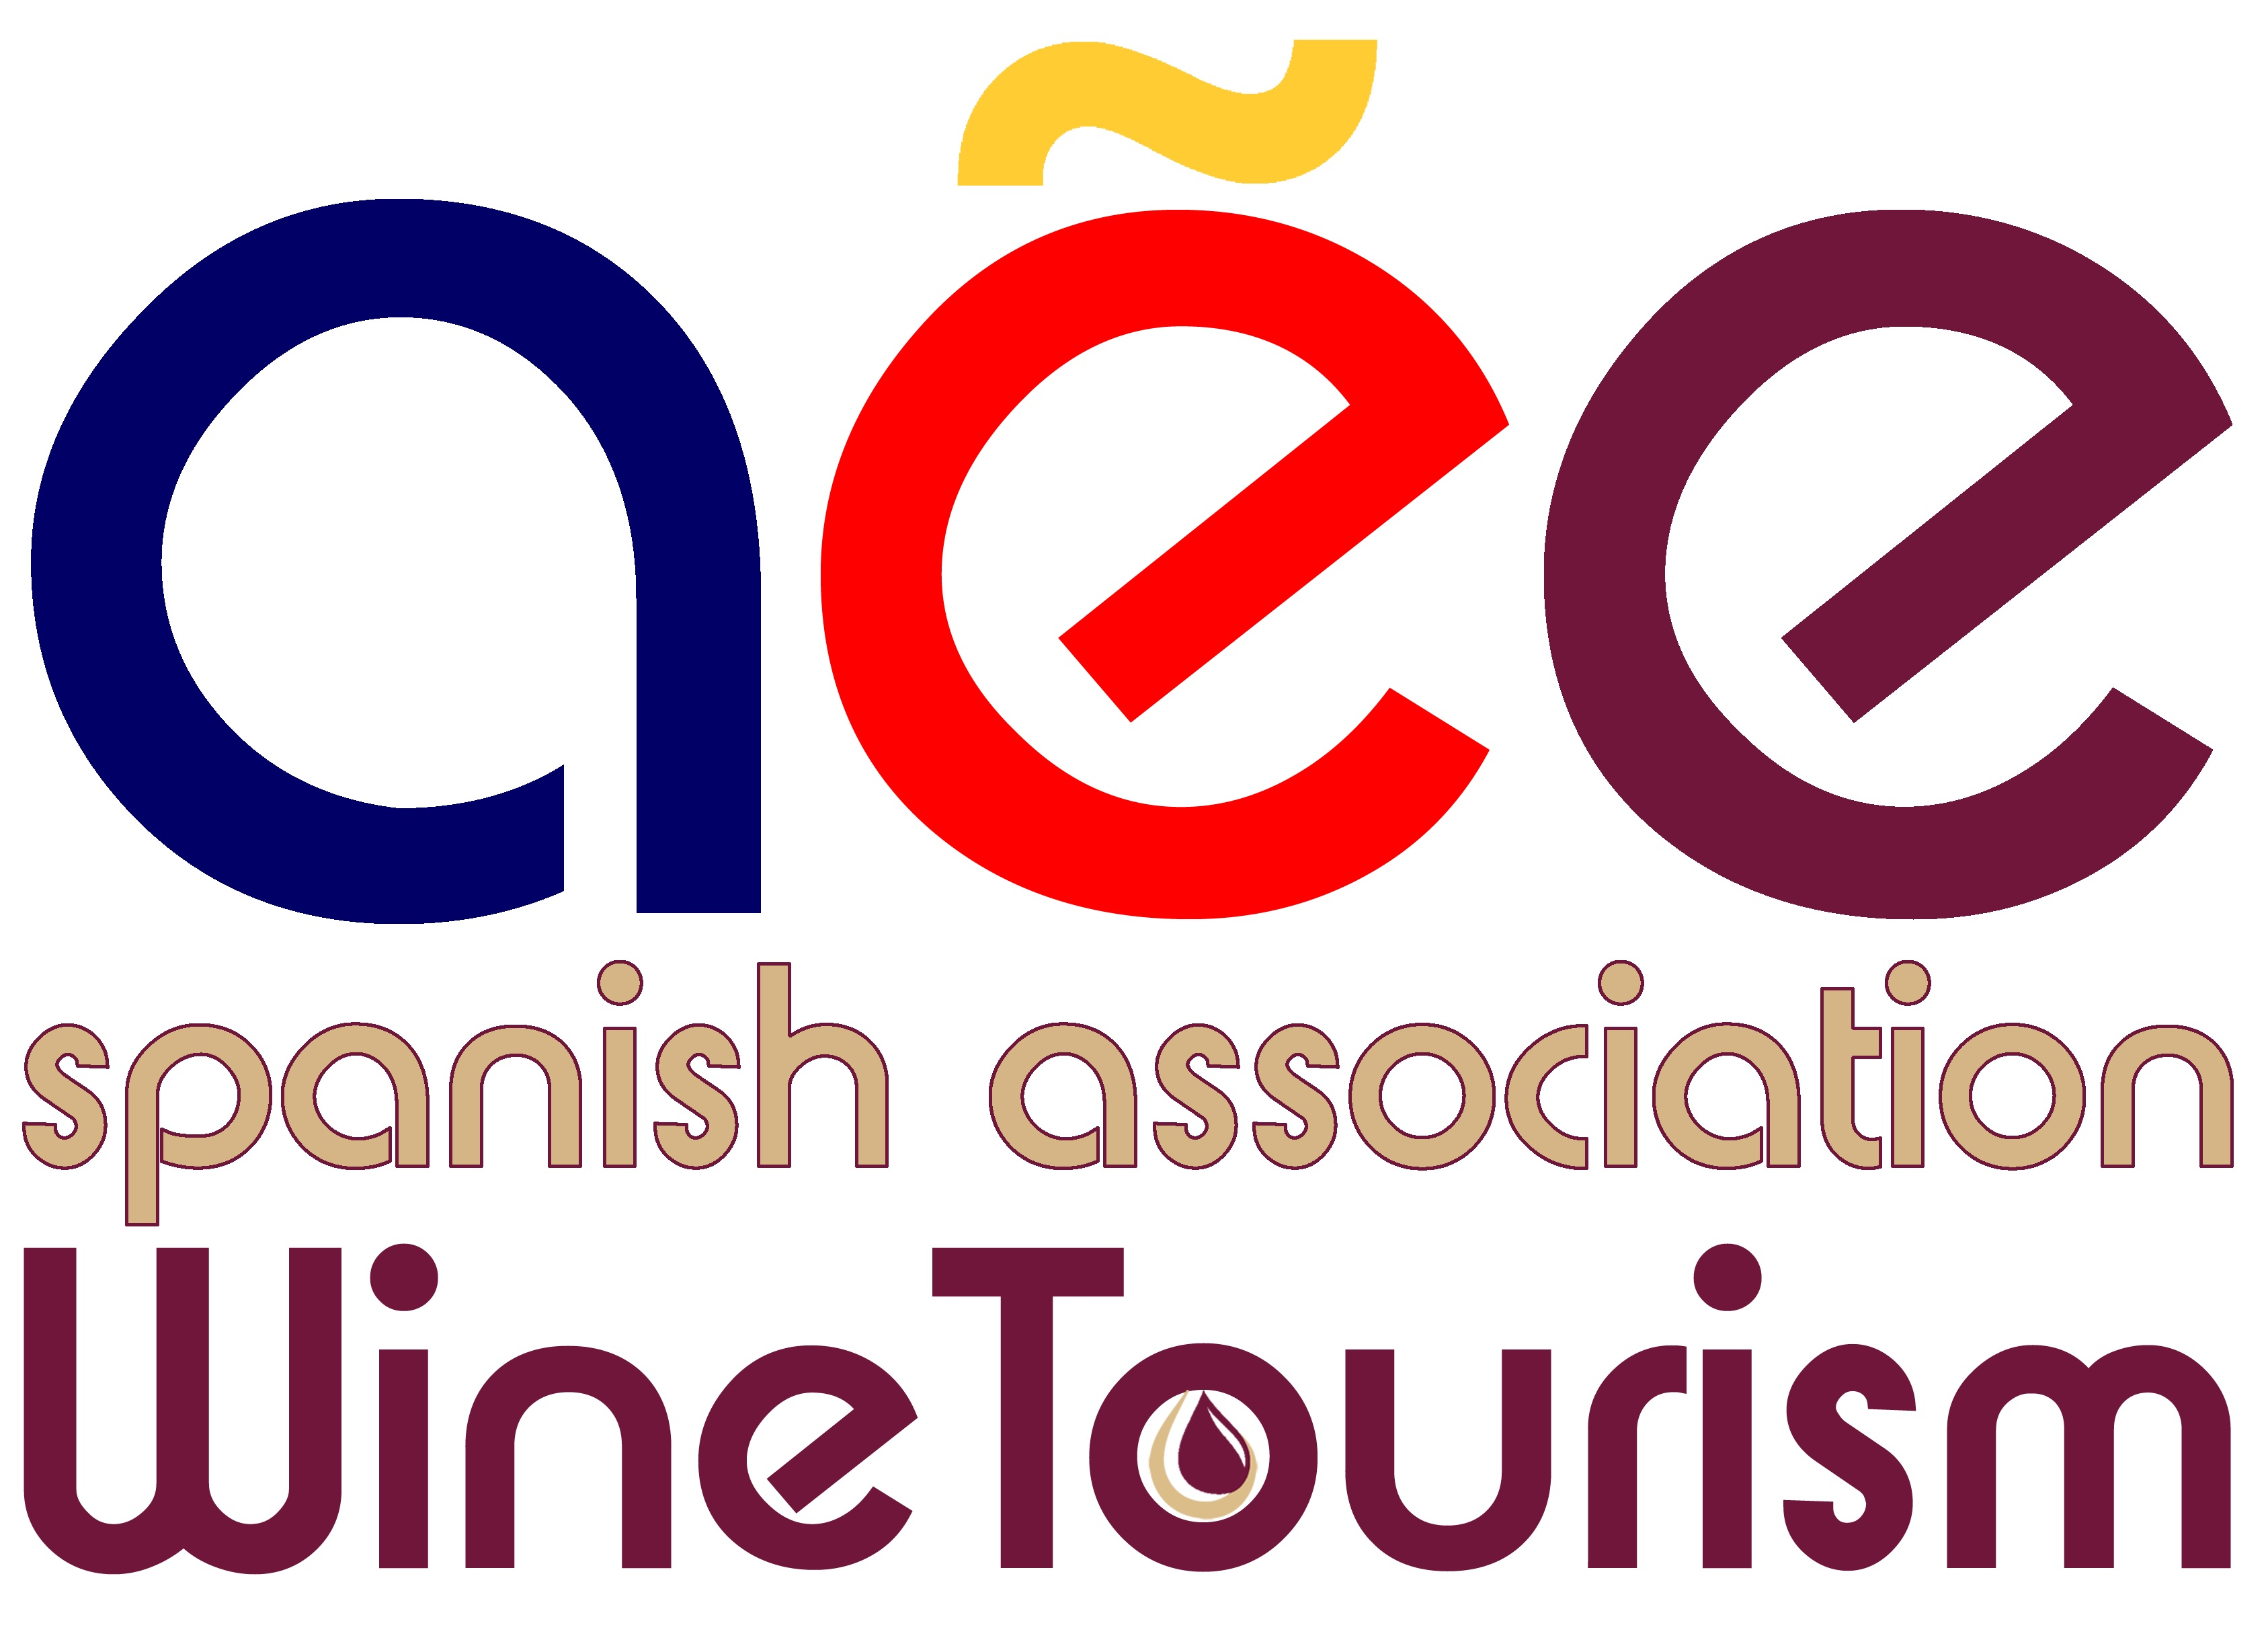 Spanish Wine Tourism Association, Spain